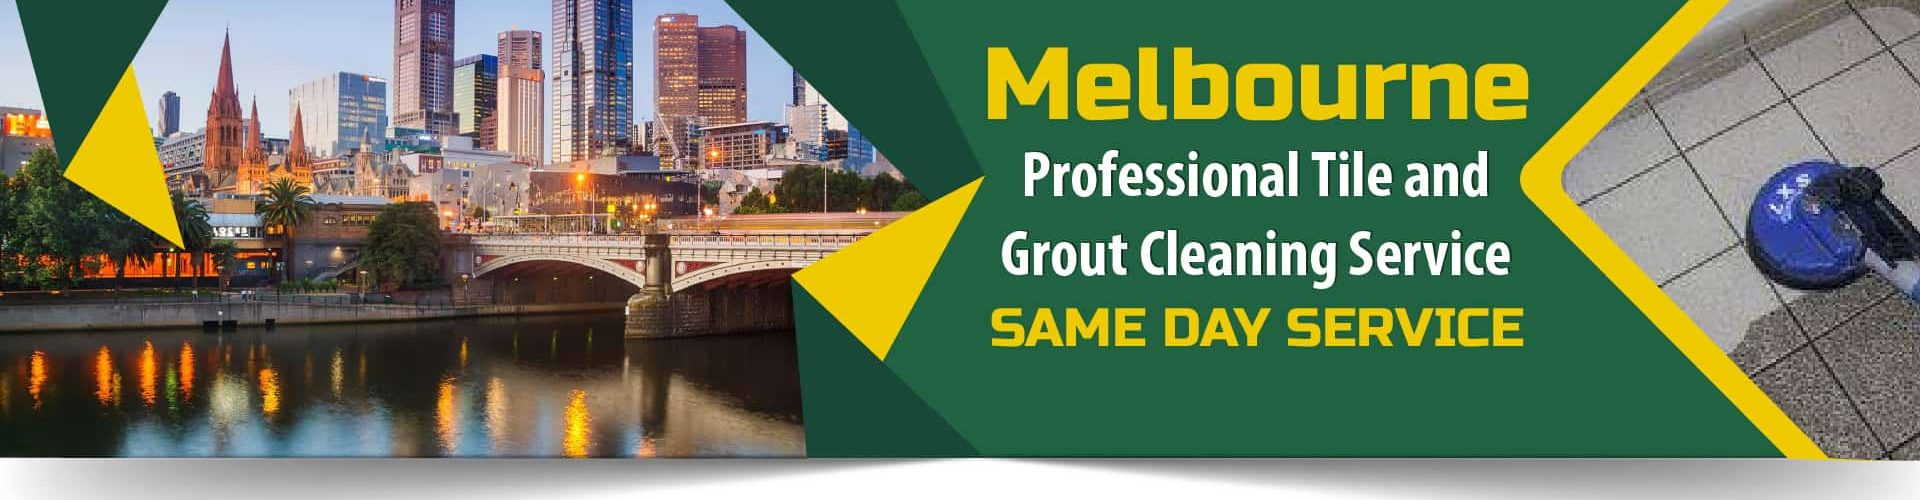 Expert Tile and Grout Cleaning Melbourne